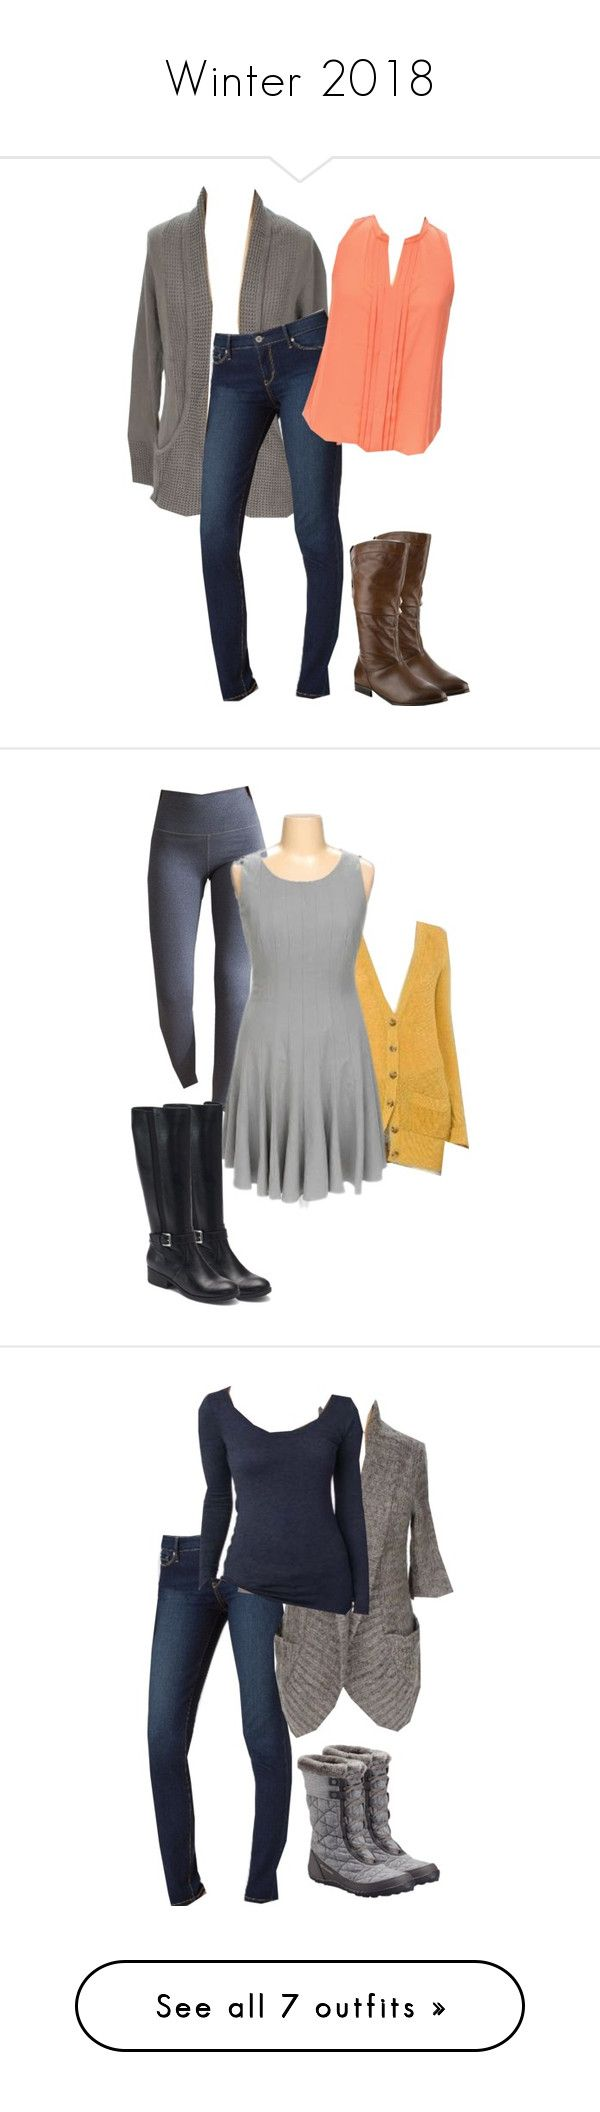 """""""Winter 2018"""" by emorrell on Polyvore featuring Levi's, Mossimo, Aerie, Croft & Barrow, Columbia, Not Shy, ASOS, Liz Claiborne and Old Navy"""